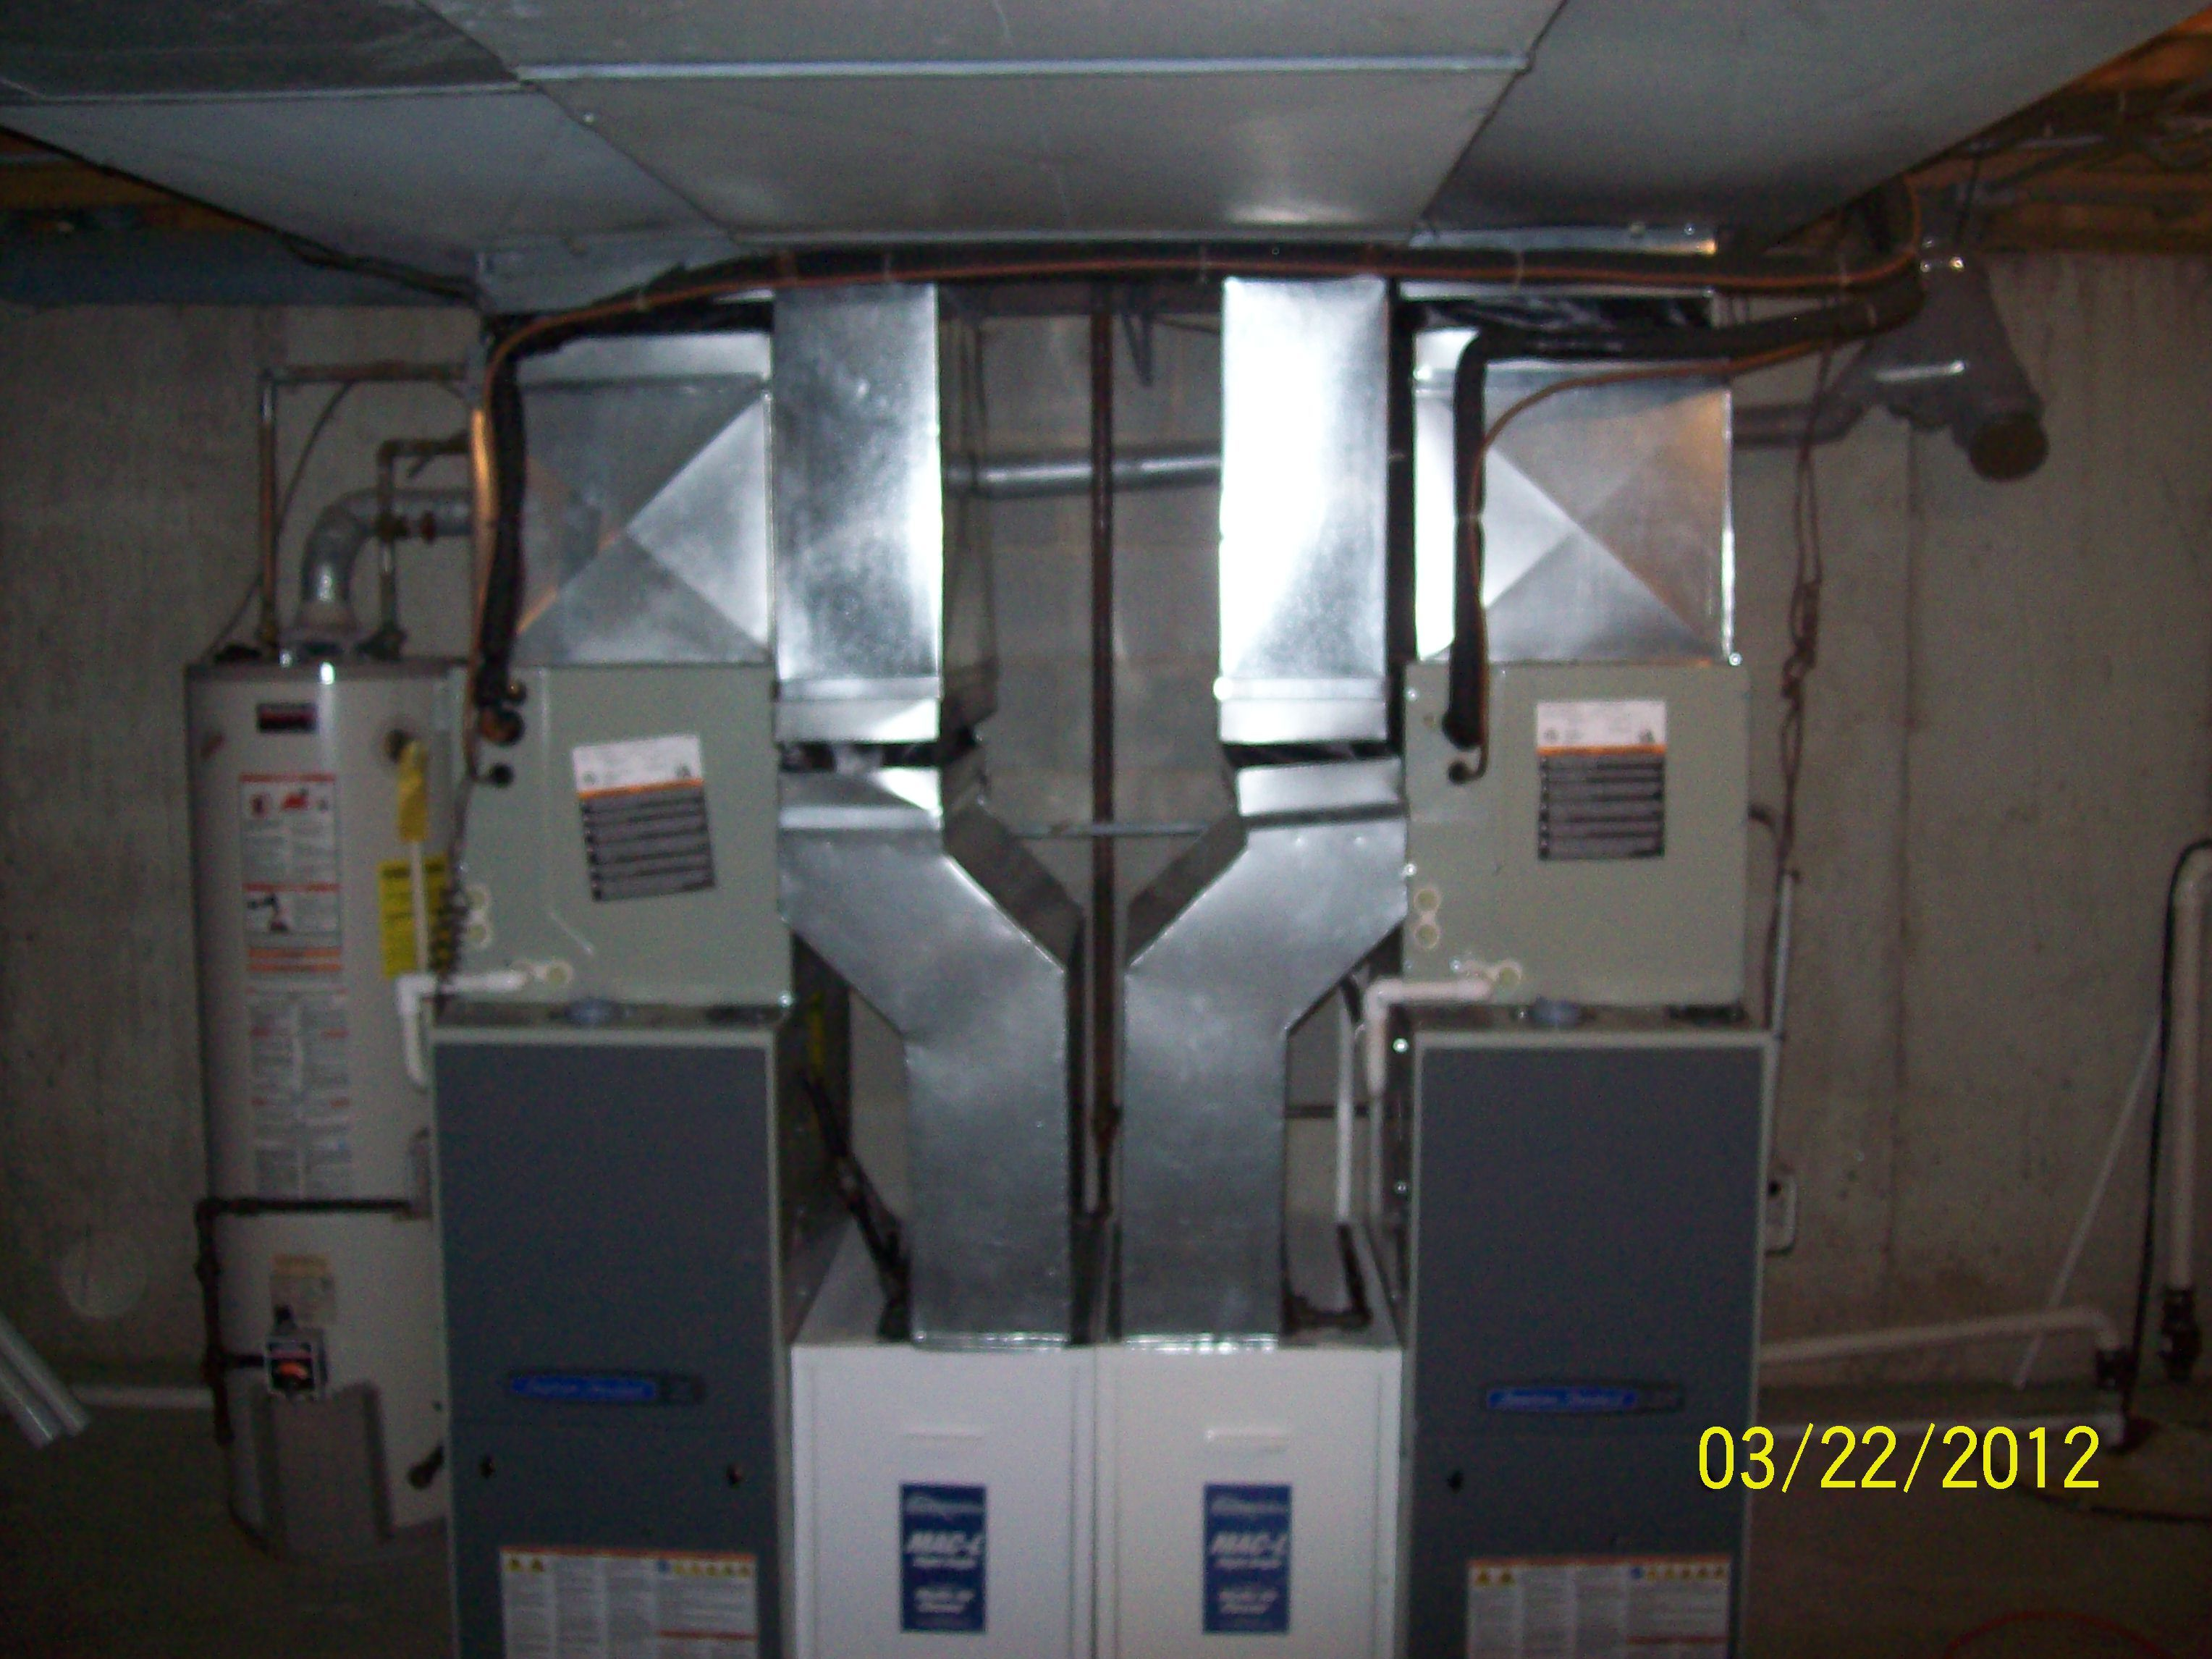 High Efficient Furnaces Installed In A Residence Heatingandcoolingtinleyparkil Heating Repair Furnace Installation Heating And Cooling